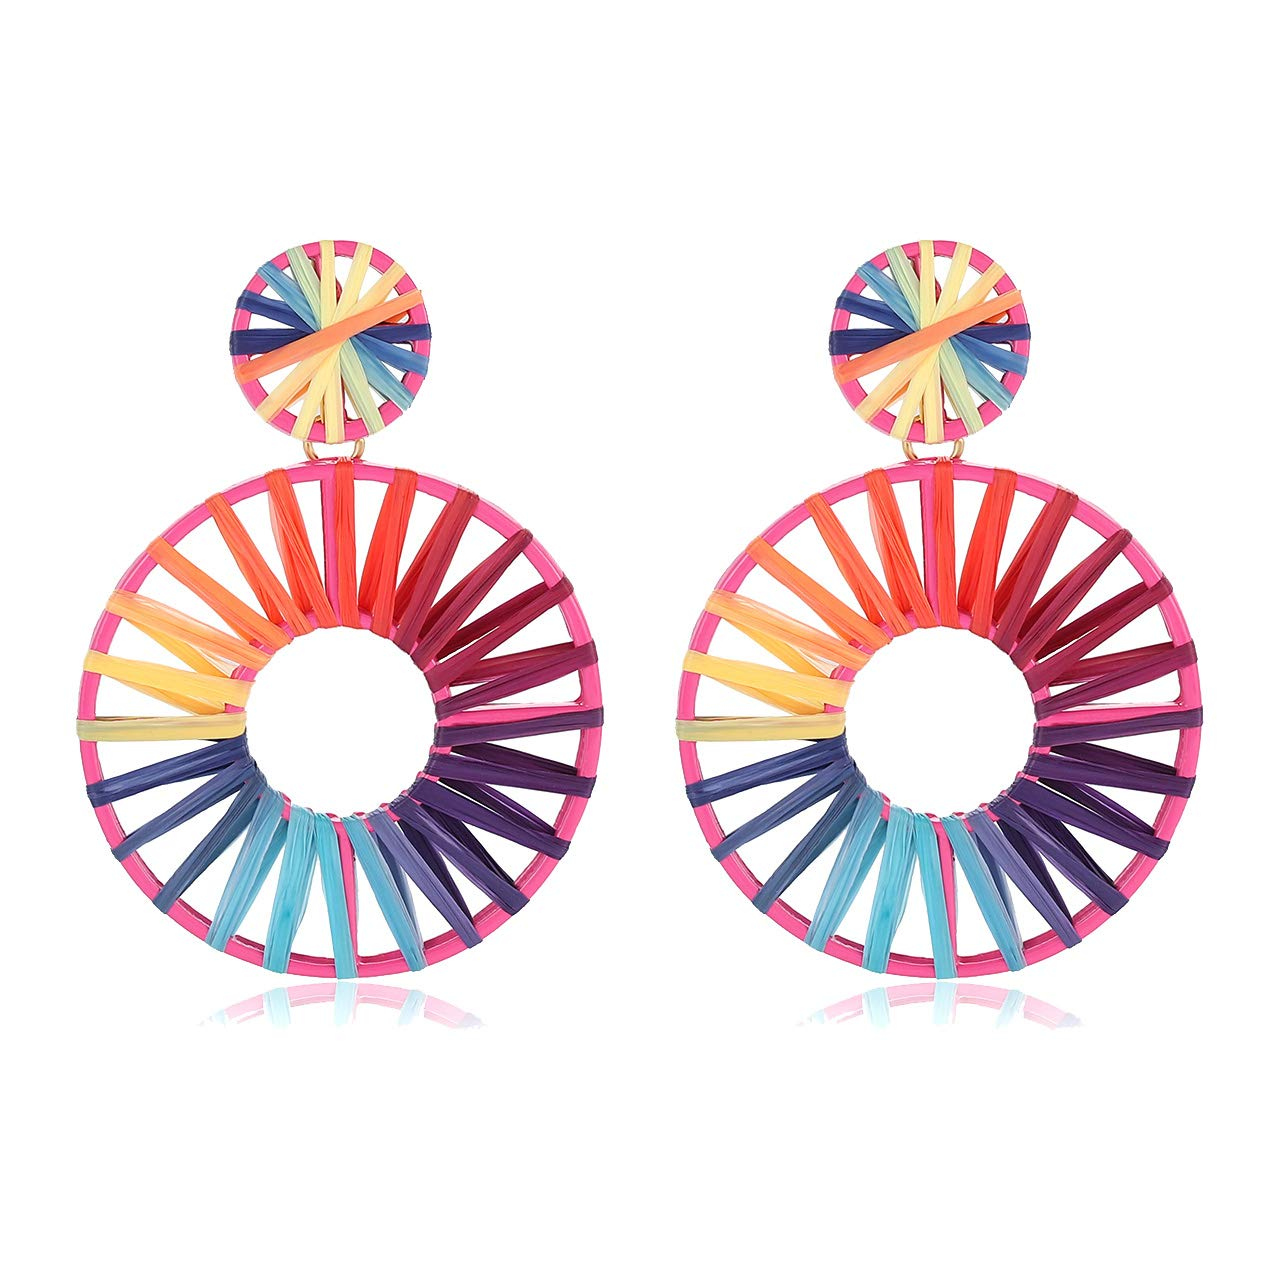 CEALXHENY Raffia Drop Earrings Weave Straw Raffia Hoop Earrings Lightweight Statement Rainbow Dangle Earring for Women Girls